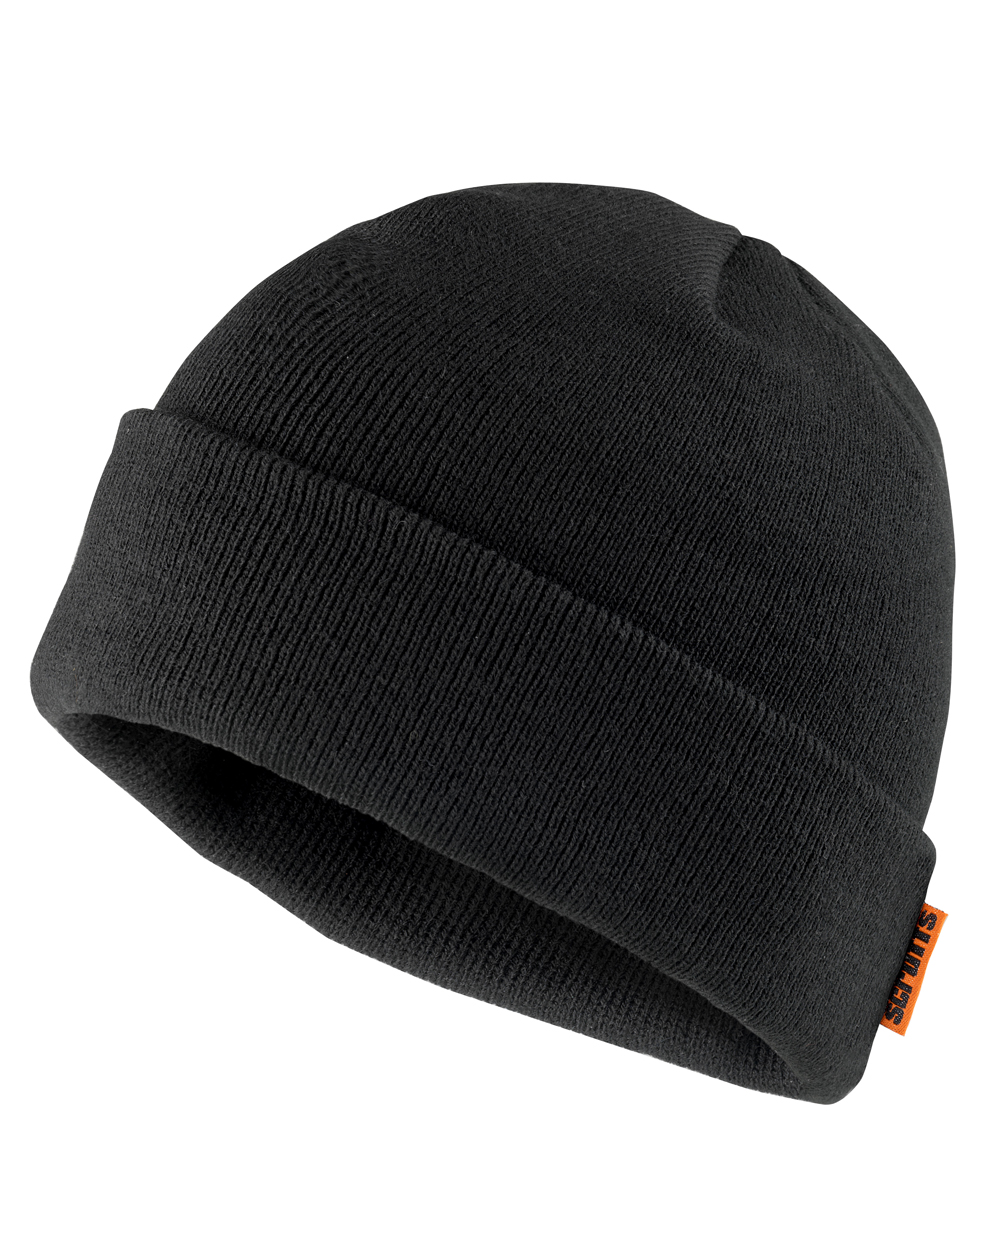 You searched for: black white beanie! Etsy is the home to thousands of handmade, vintage, and one-of-a-kind products and gifts related to your search. No matter what you're looking for or where you are in the world, our global marketplace of sellers can help you find unique and affordable options. Let's get started!